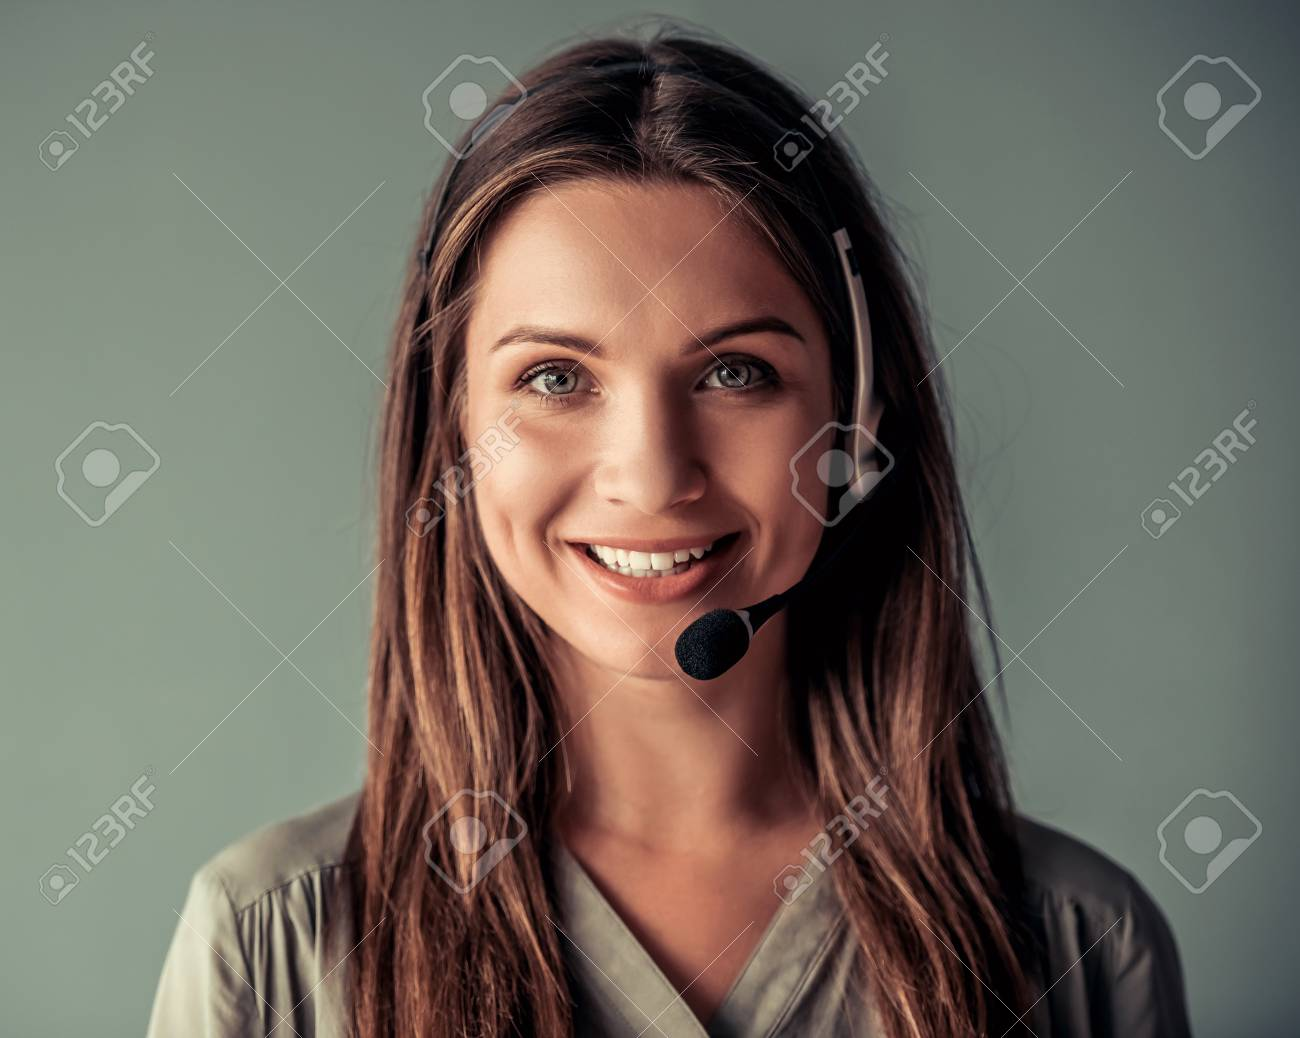 Beautiful business woman in headset is looking at camera and smiling, on gray background - 85476883